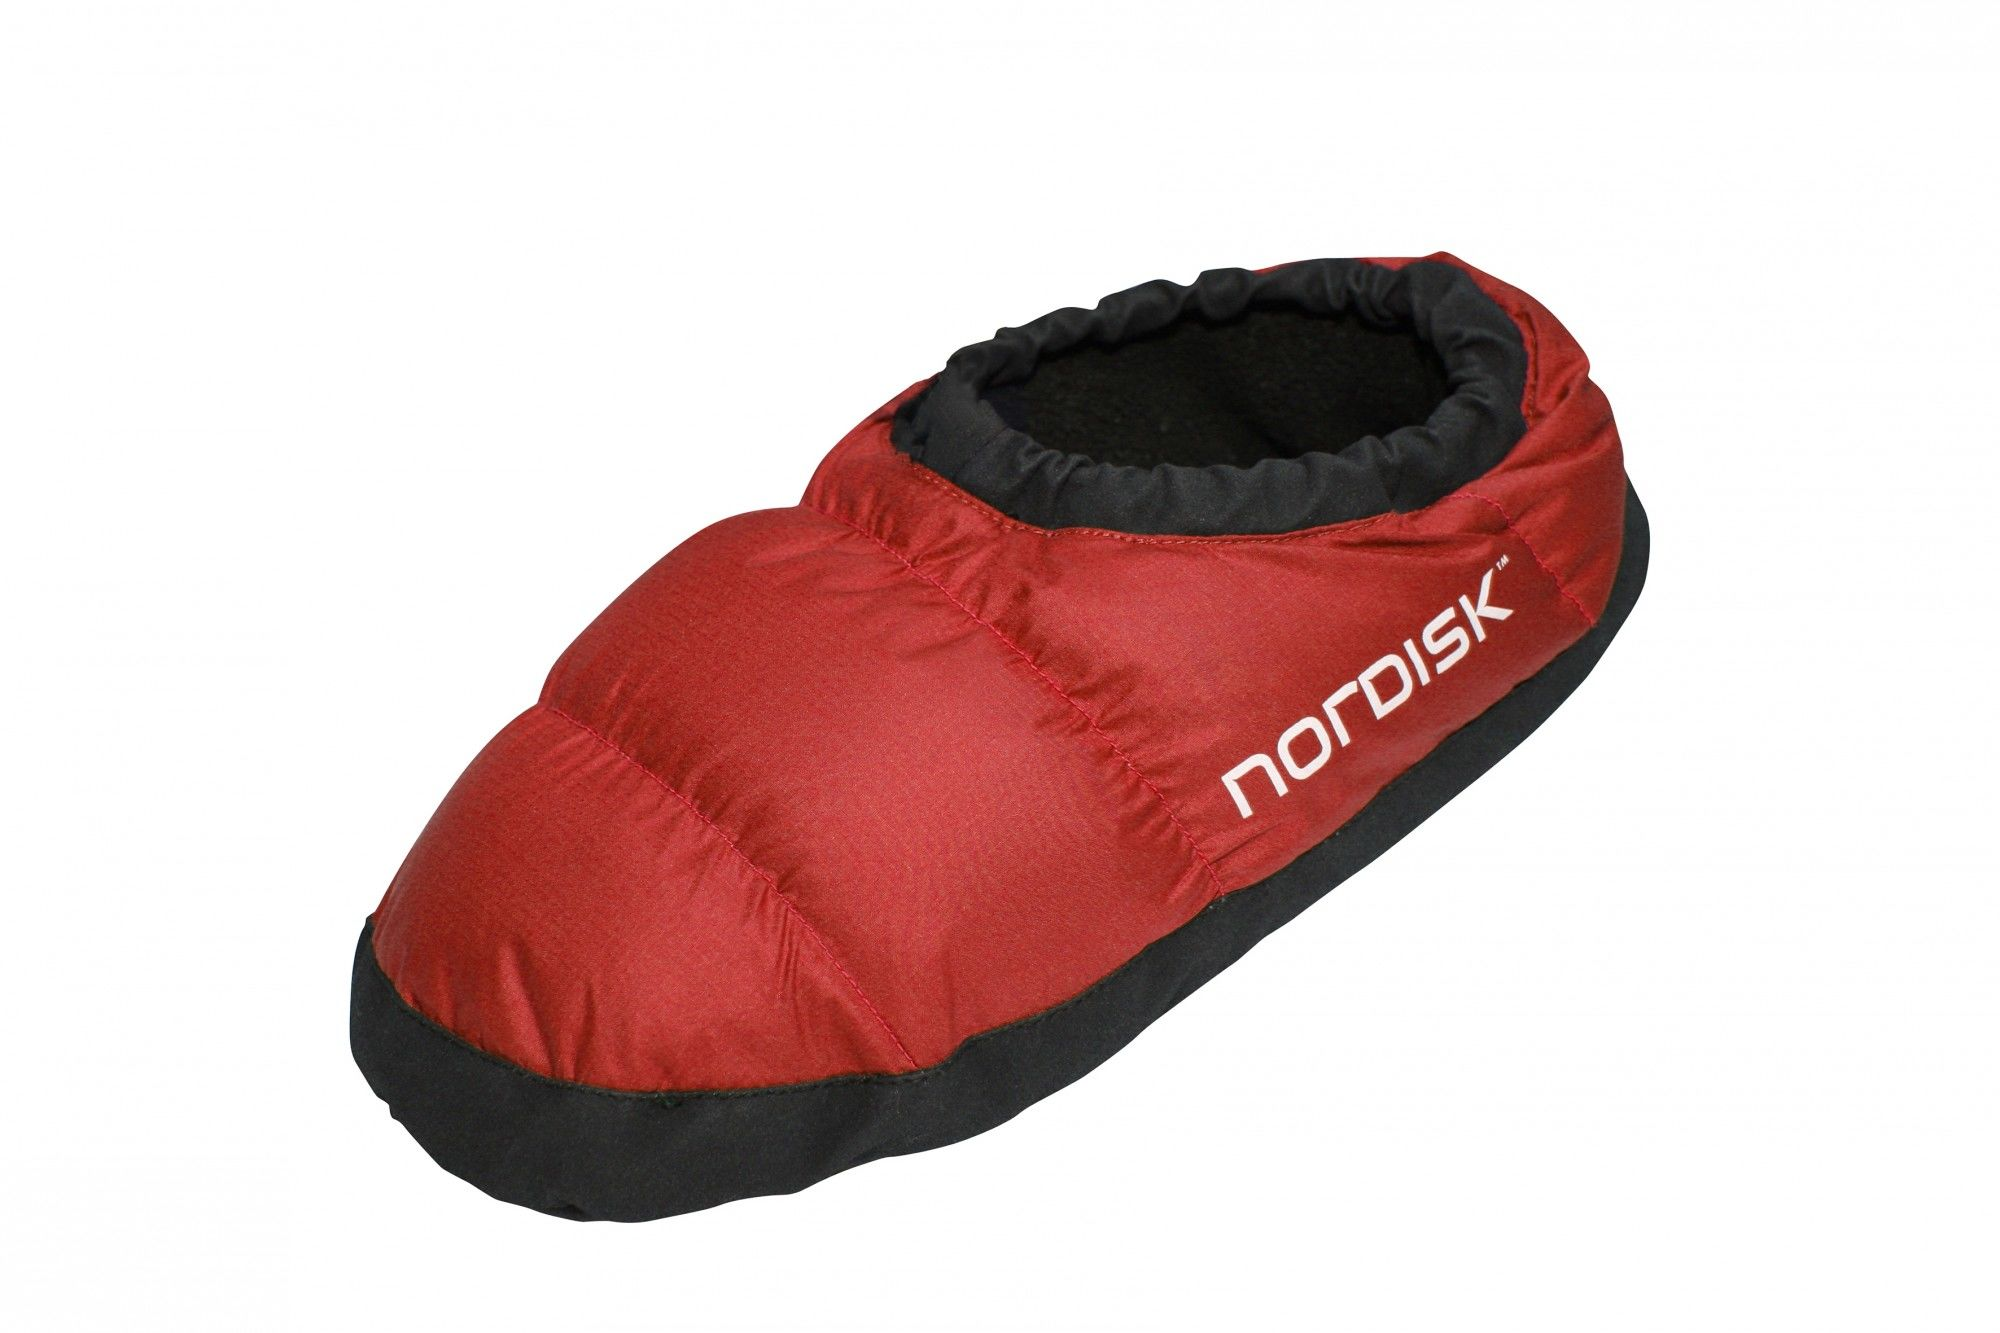 Nordisk MOS Down Shoes Rot, Daunen S -Farbe Ribbon Red, S